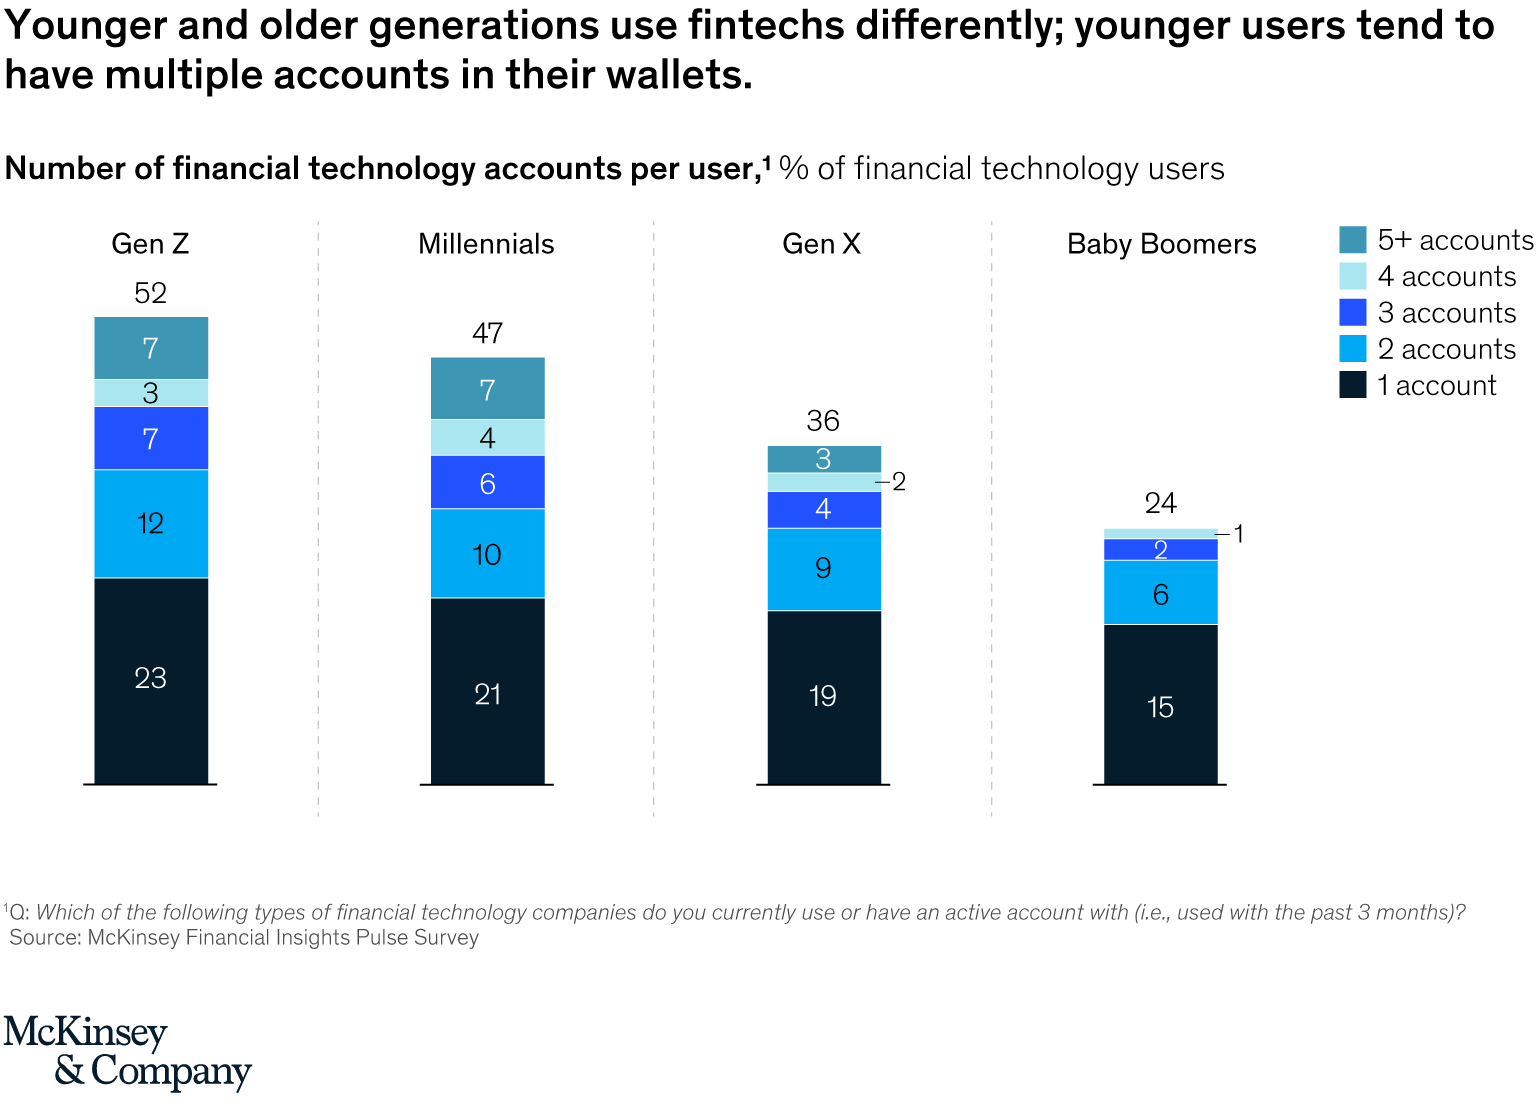 Number of financial technology accounts per user, Source- McKinsey Financial Insights Pulse Survey